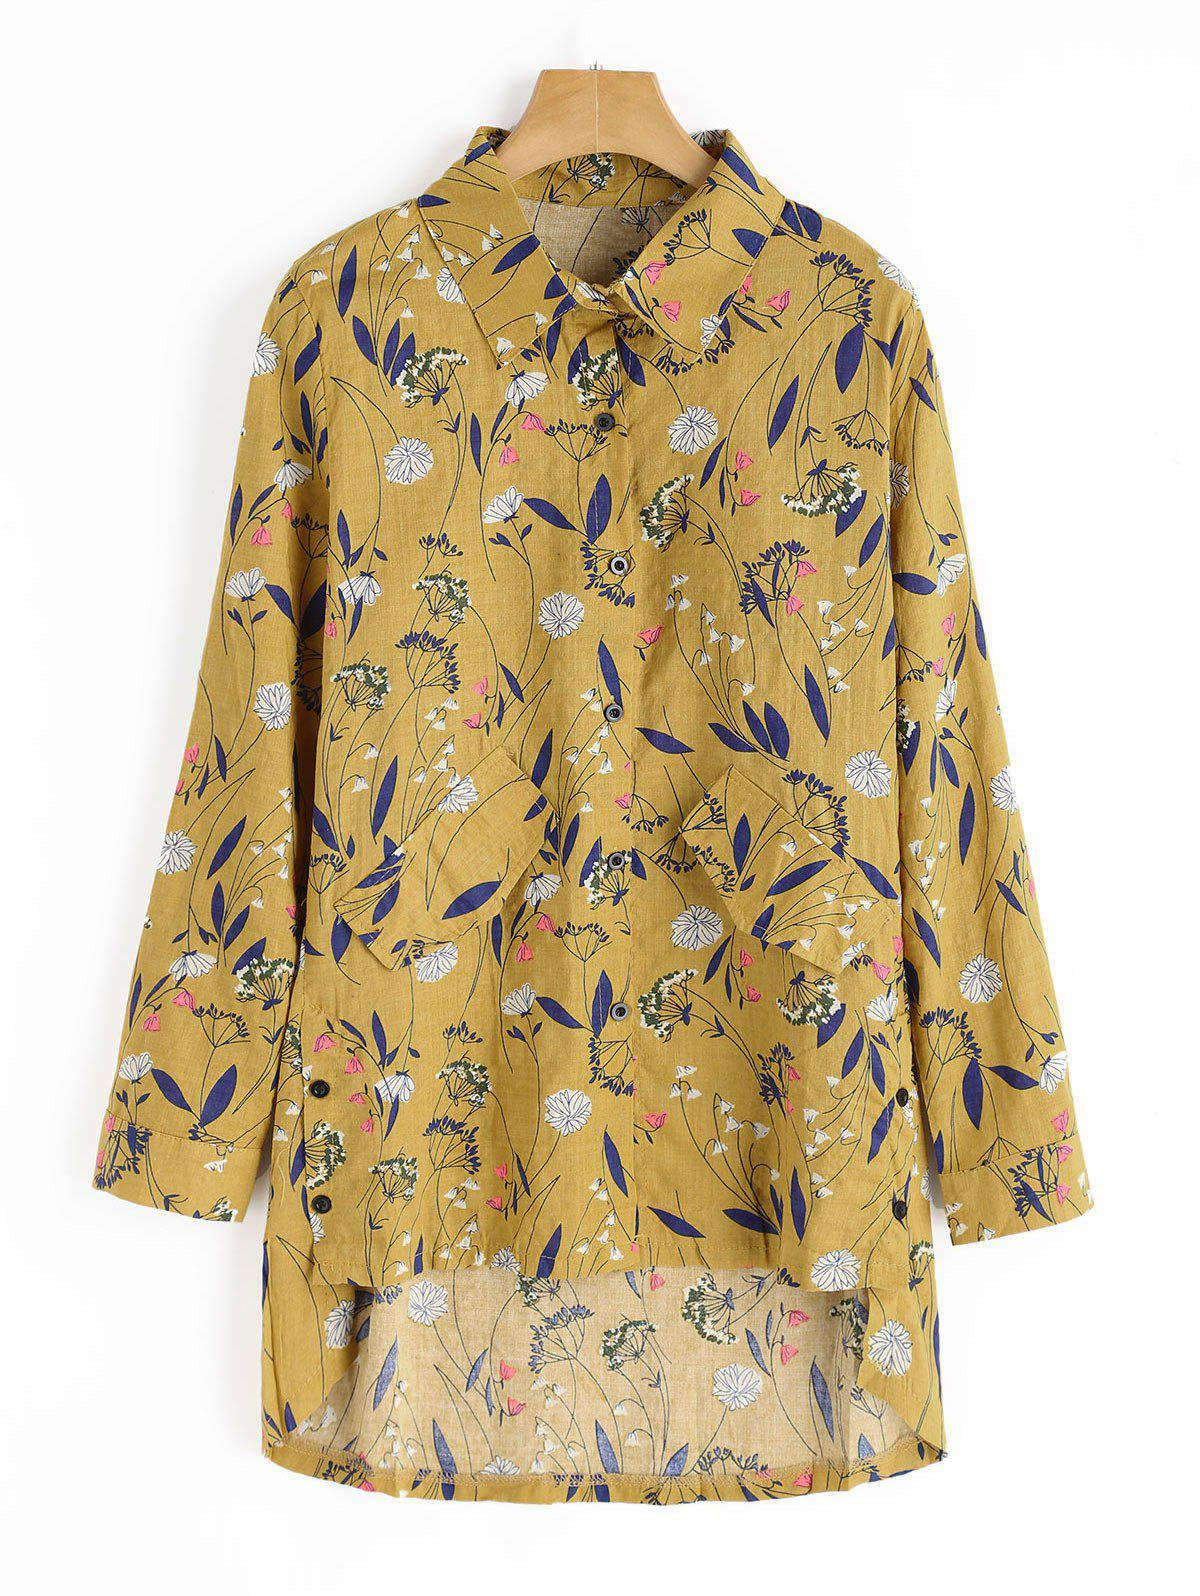 Faux Pockets Floral Print High Low Shirt 230500705